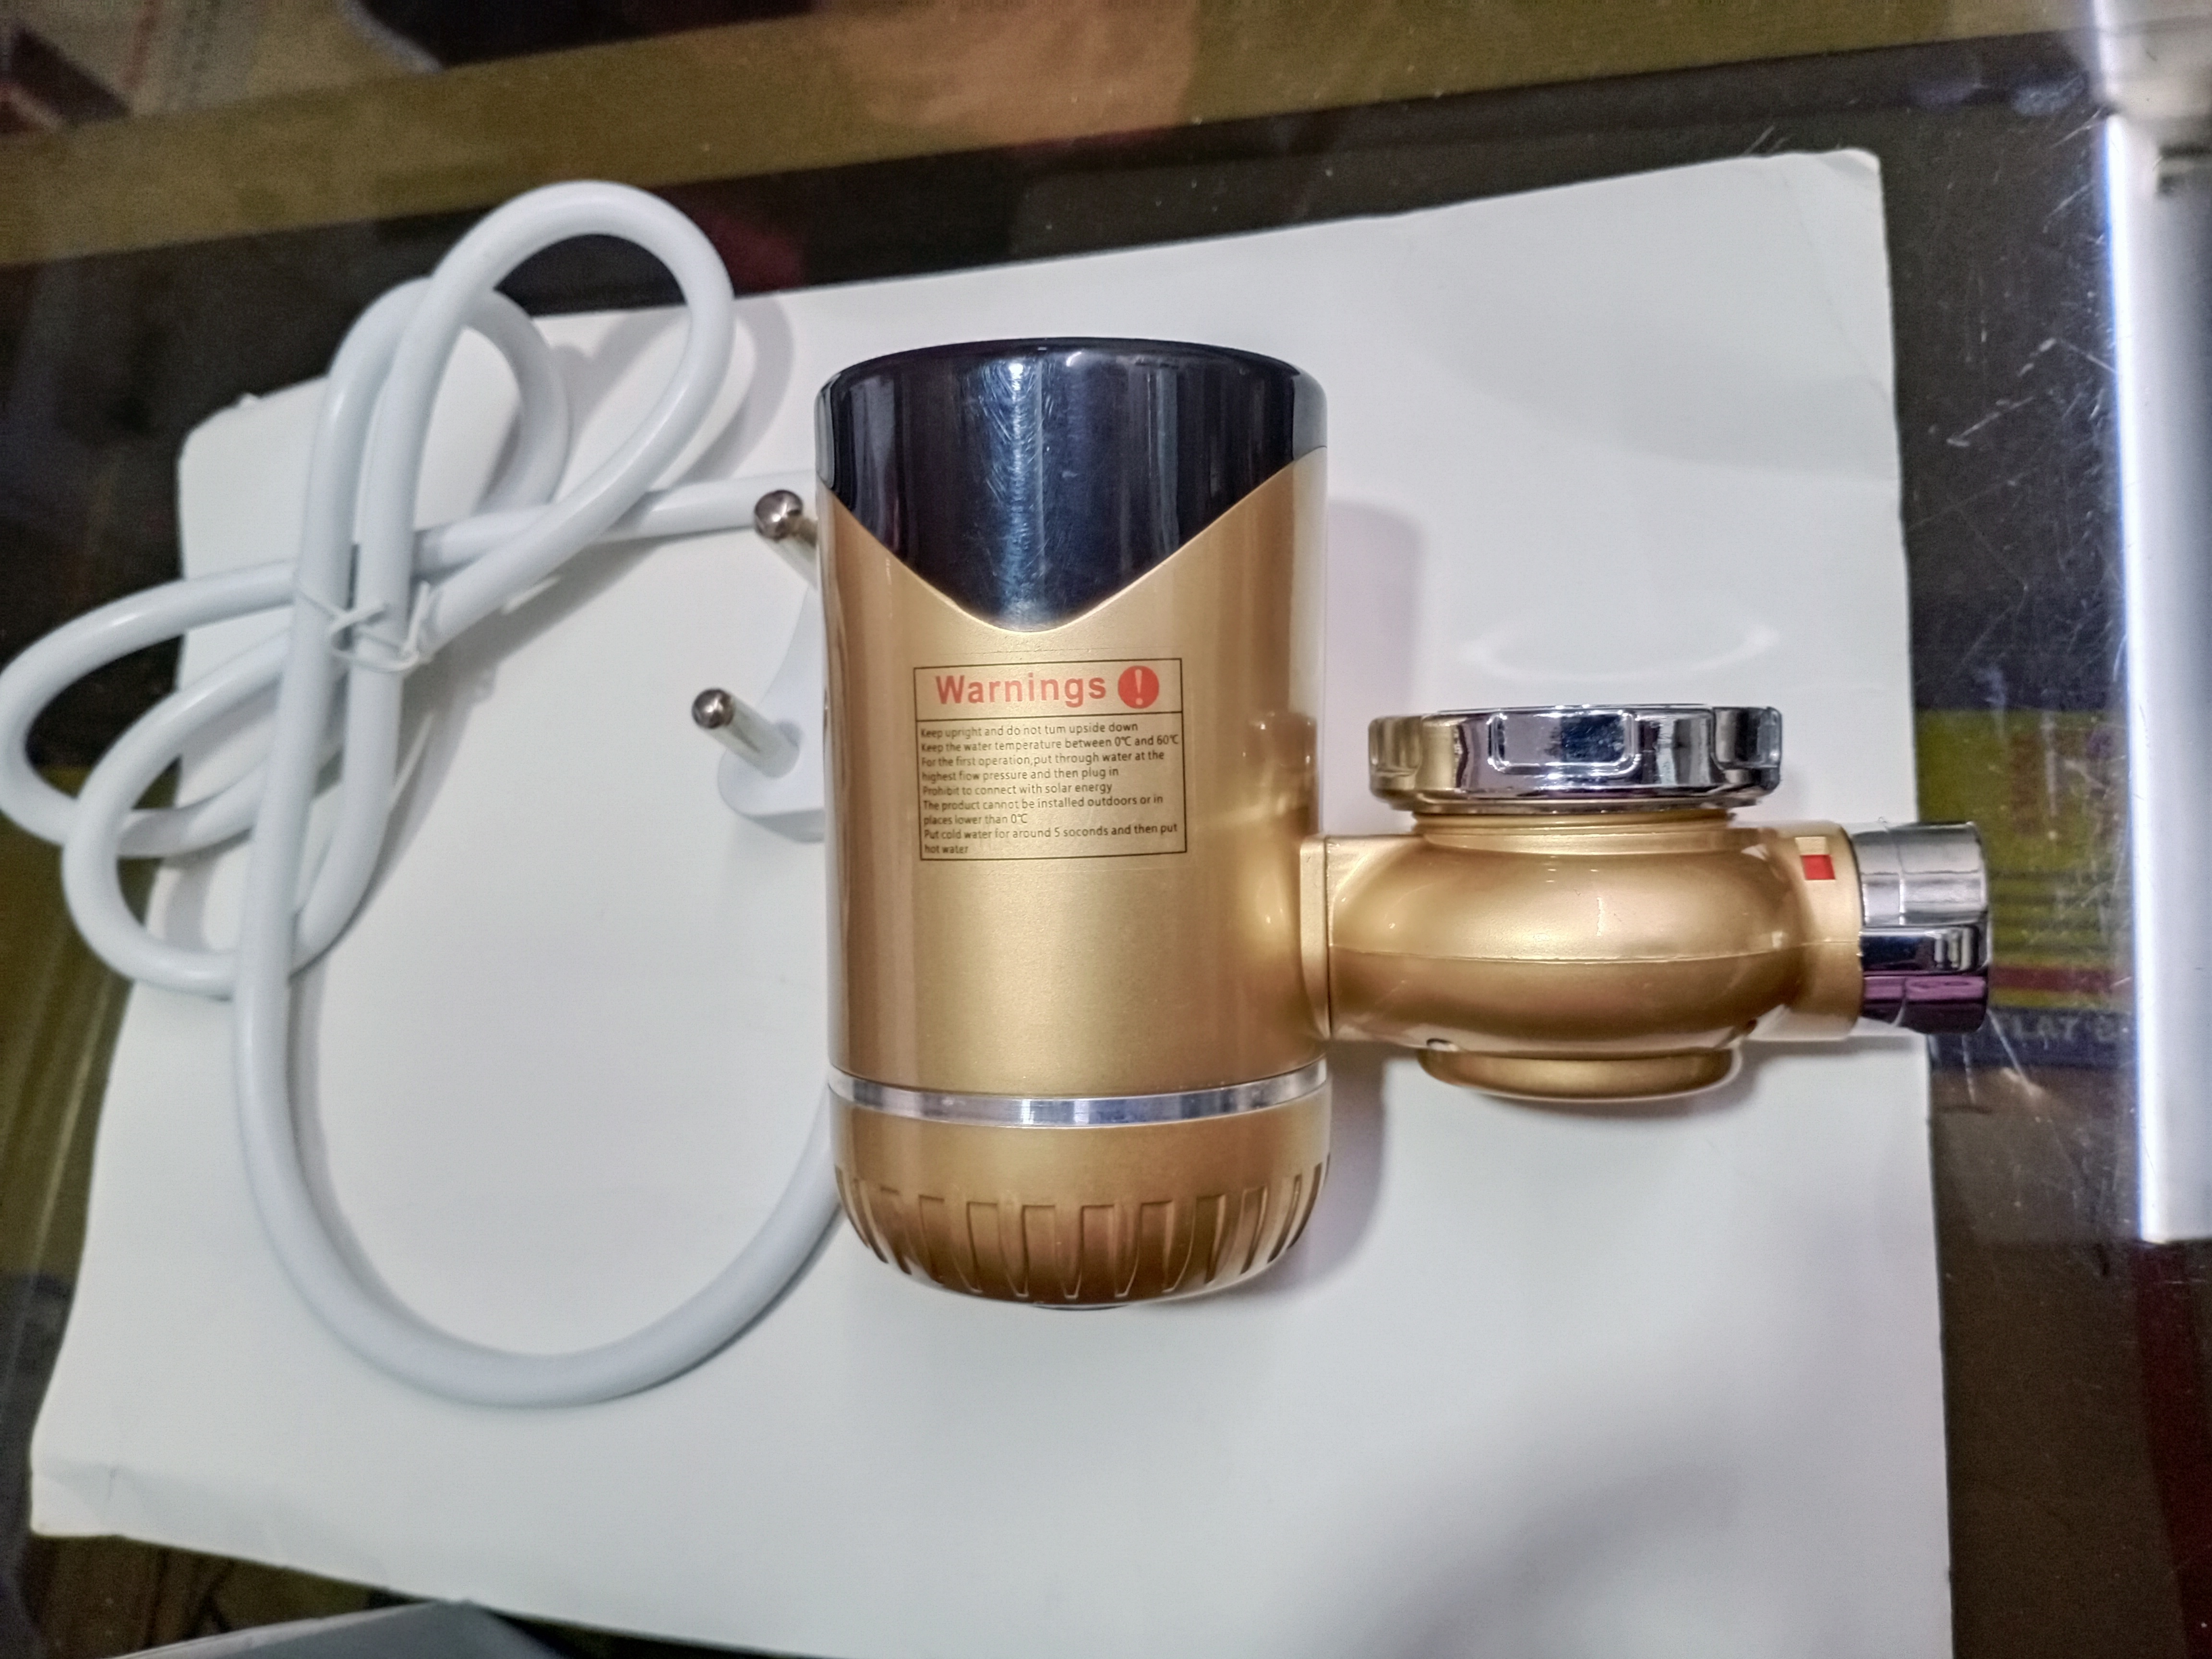 INSTANT HOT WATER DEVICE